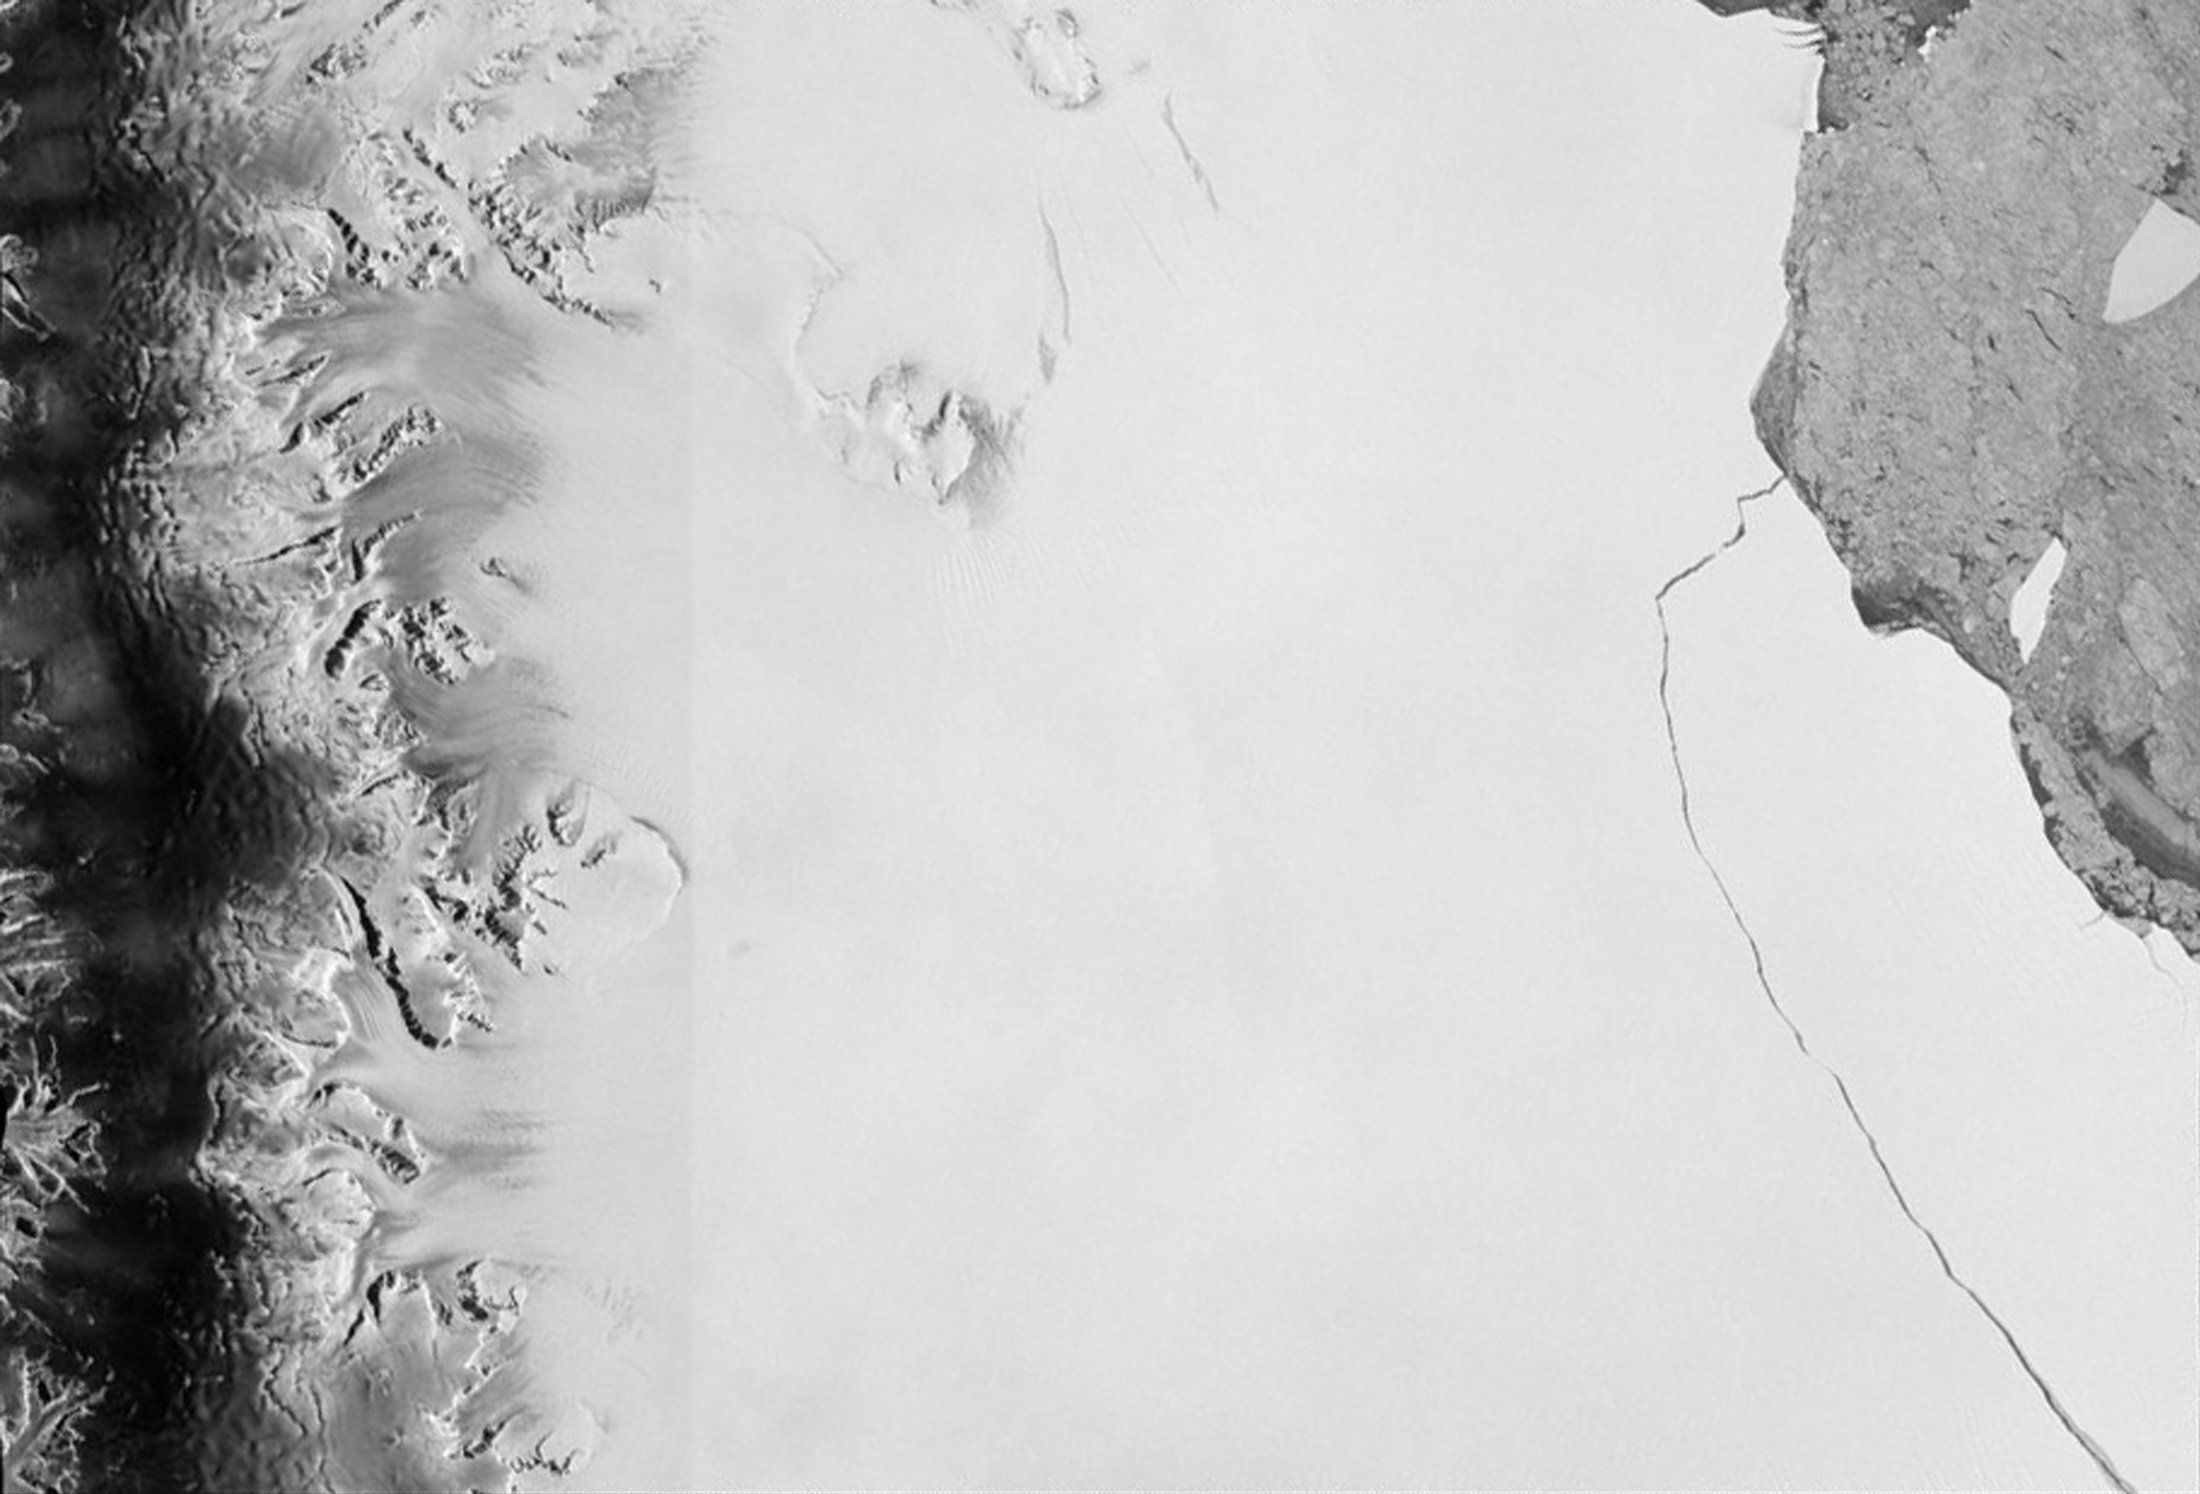 Scientists Capture the Moment an Iceberg Breaks off from a Greenland Glacier